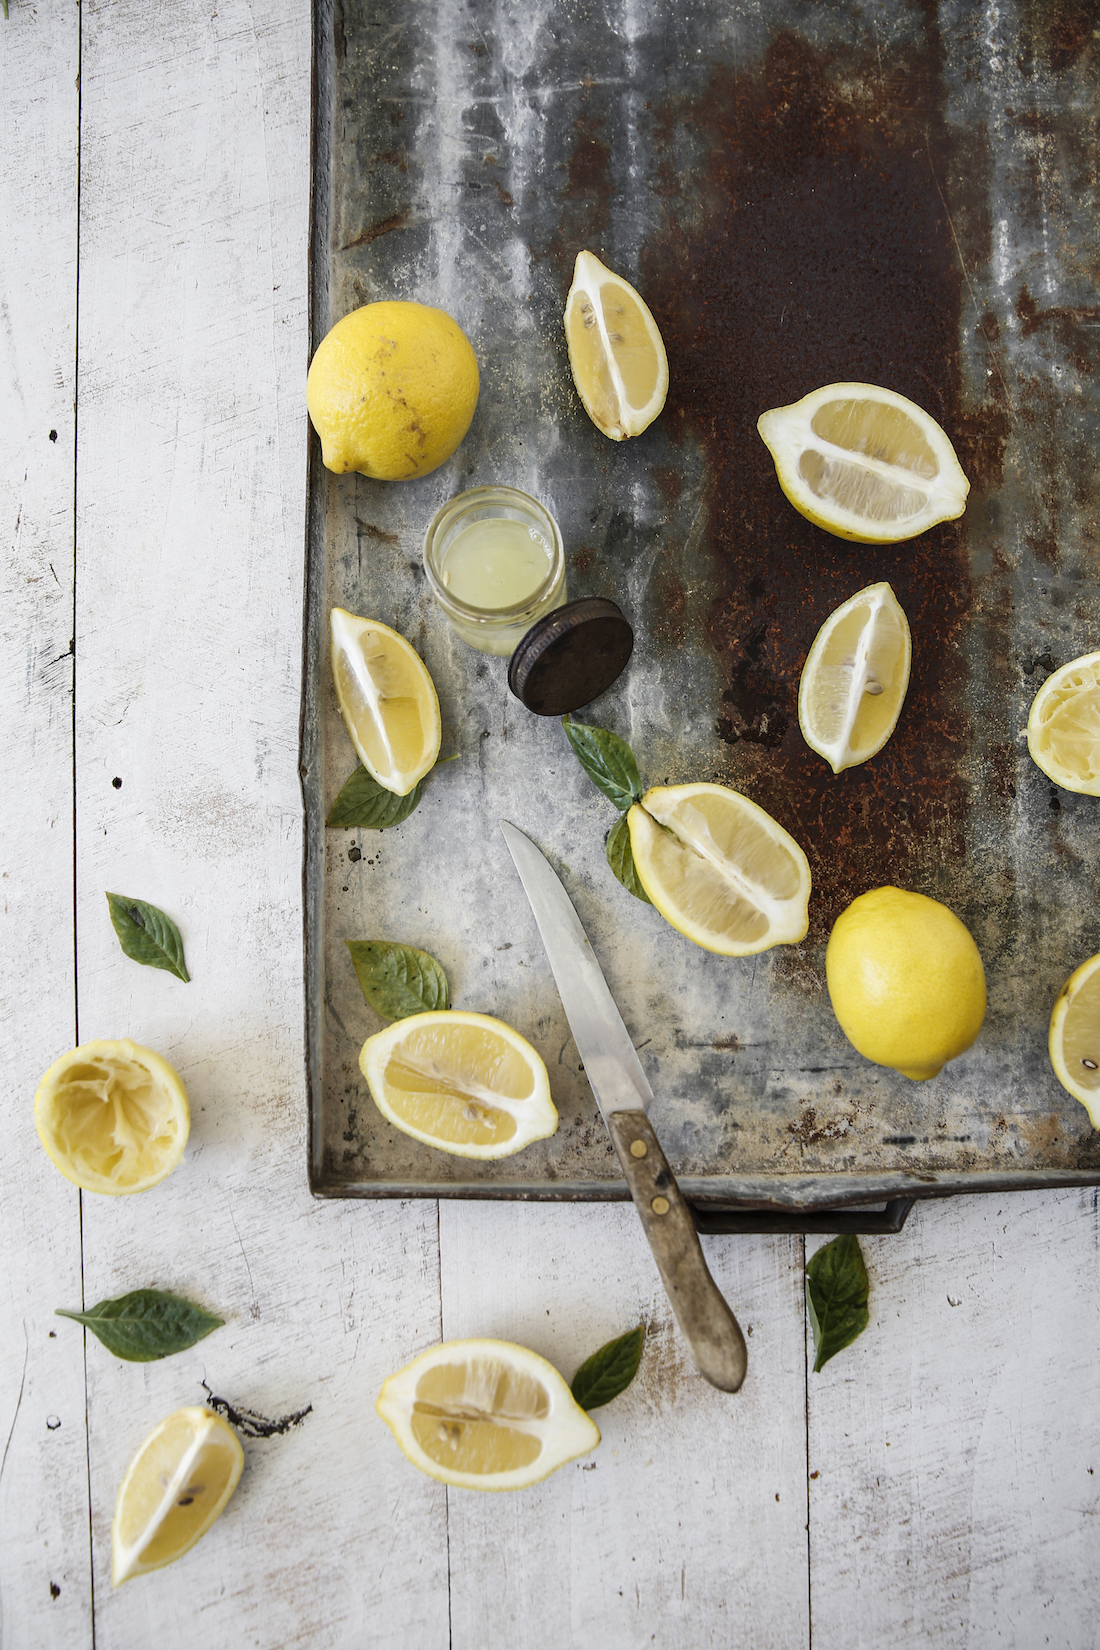 Lemons! On salads & in hot or chilled water. A Vitamin C hit is good for your gut, your skin & general wellbeing.